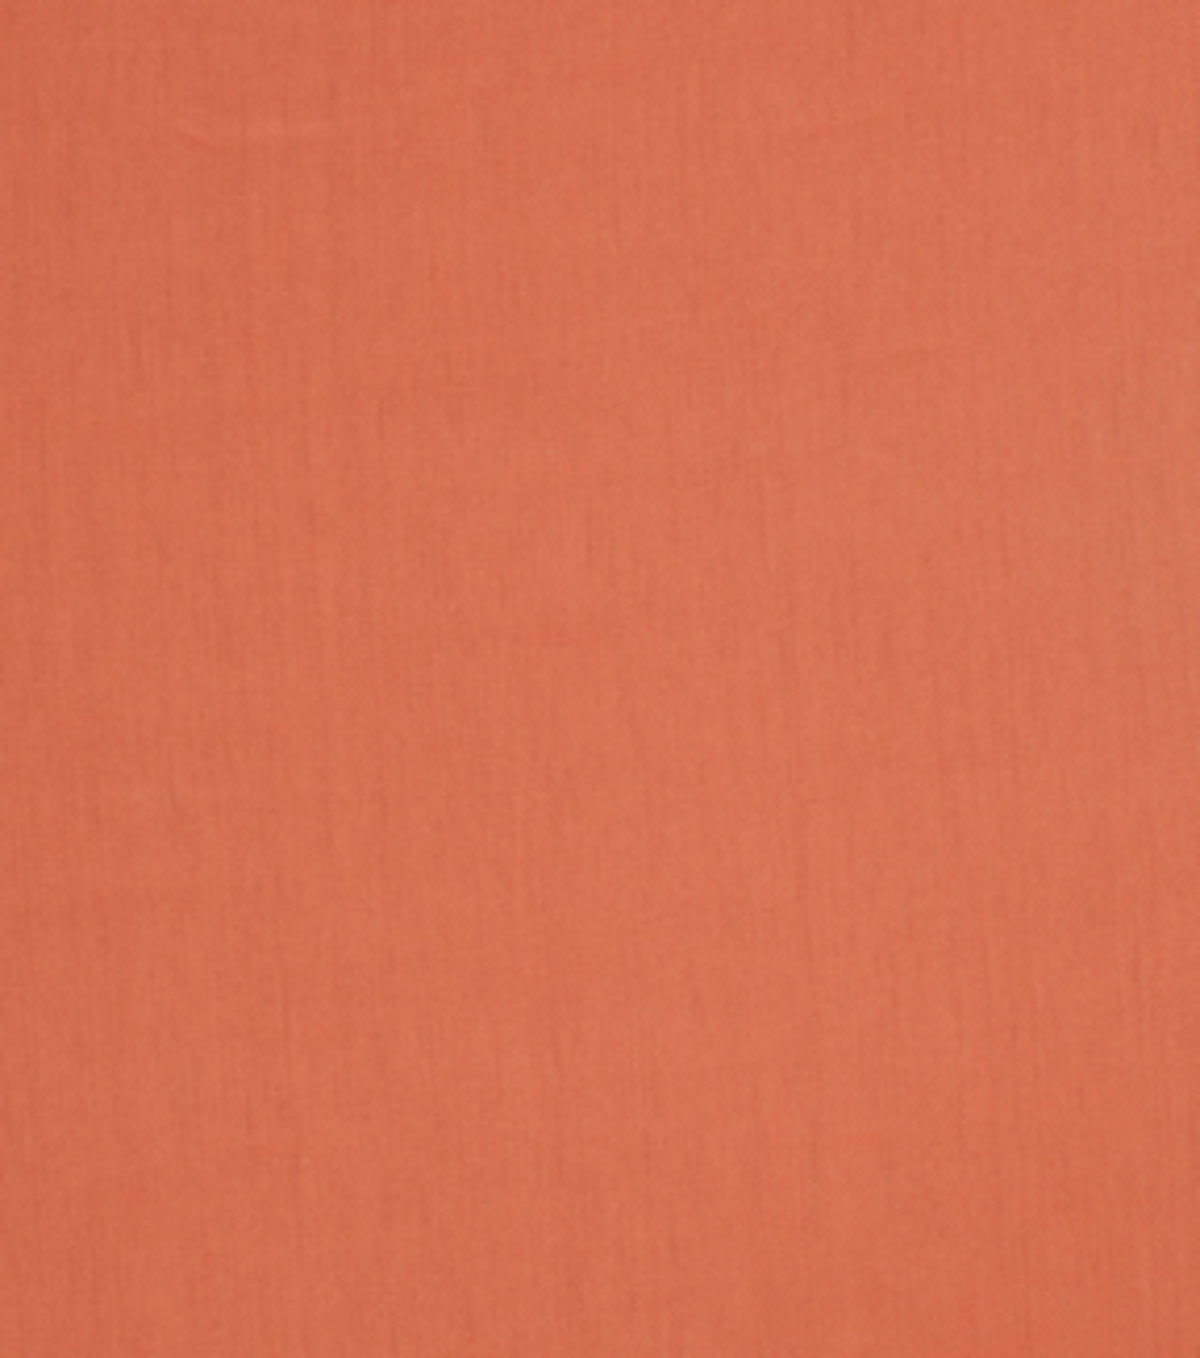 Home Decor 8\u0022x8\u0022 Fabric Swatch-Eaton Square Croissant Coral